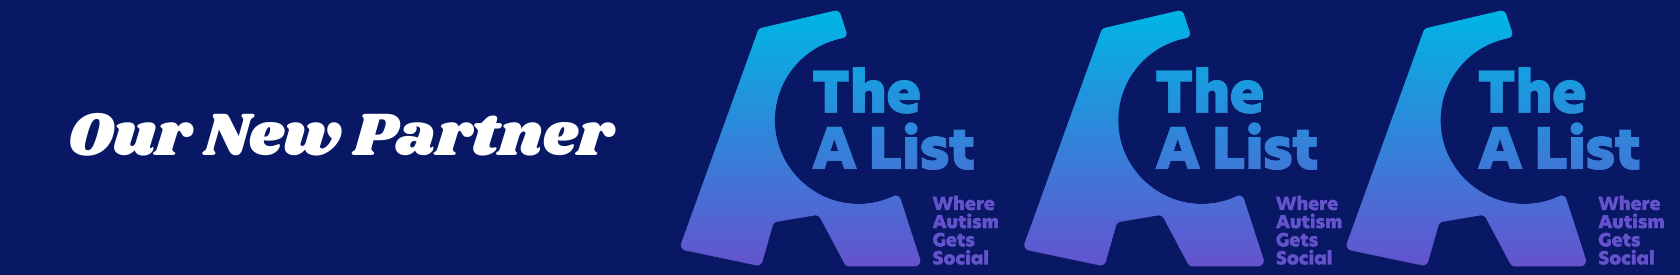 LPF partners with The A List